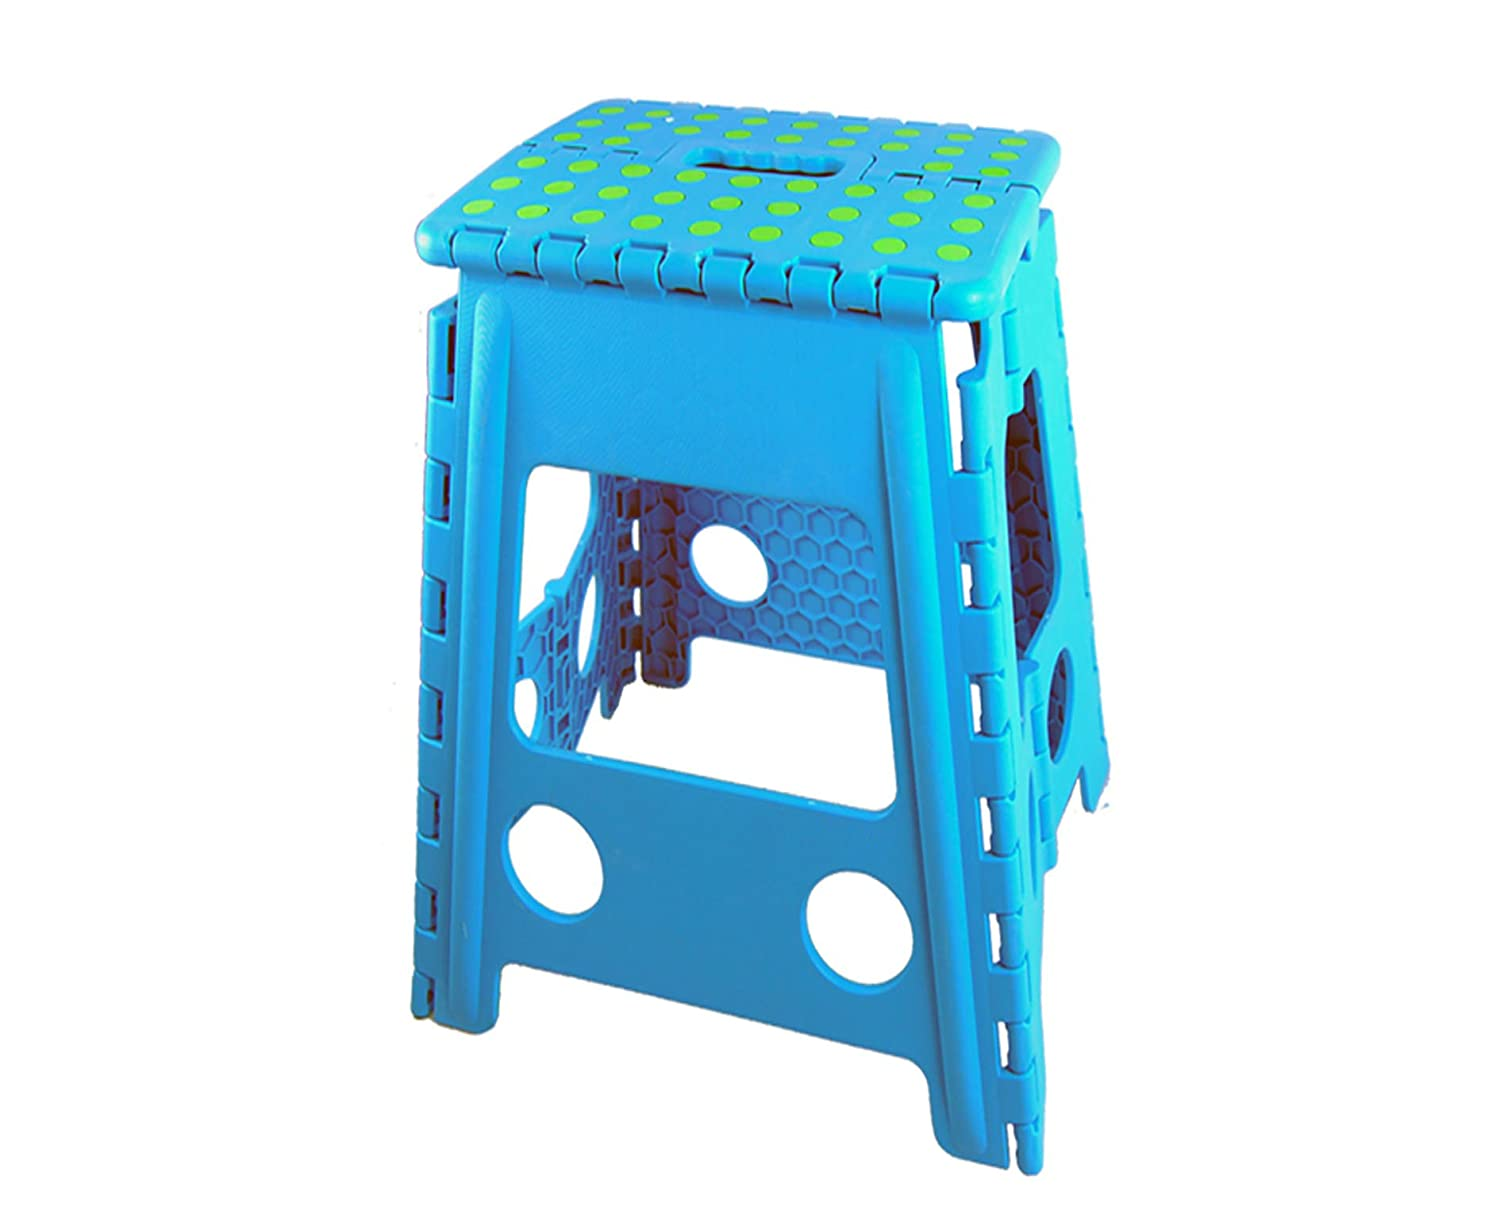 Easy Step Up Stool Amp Ez Step Up Stool Green